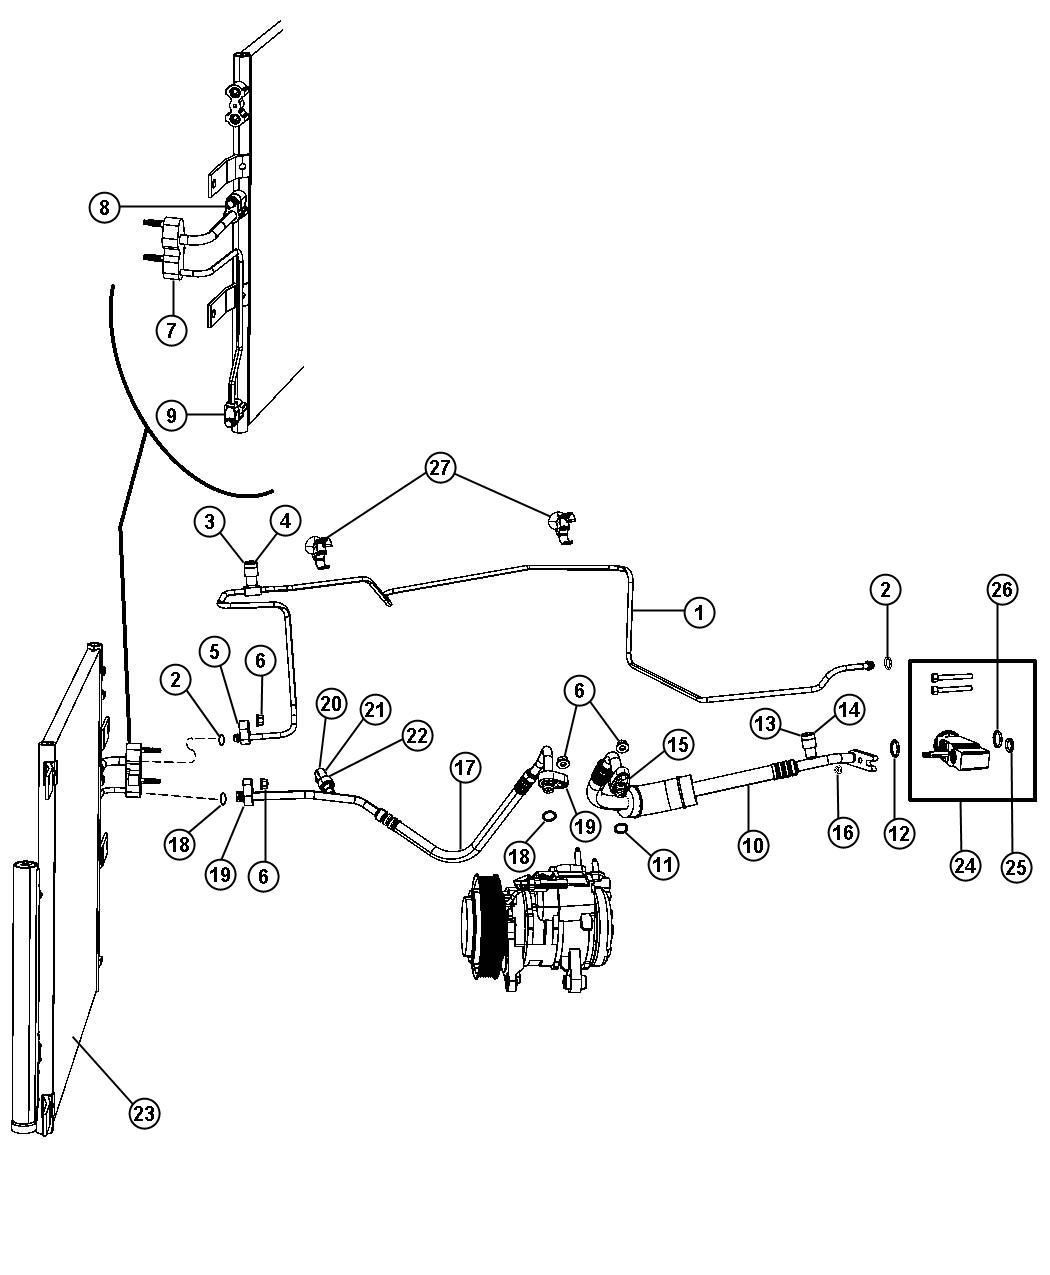 Dodge Ram Line A C Suction Air Conditioning Engine